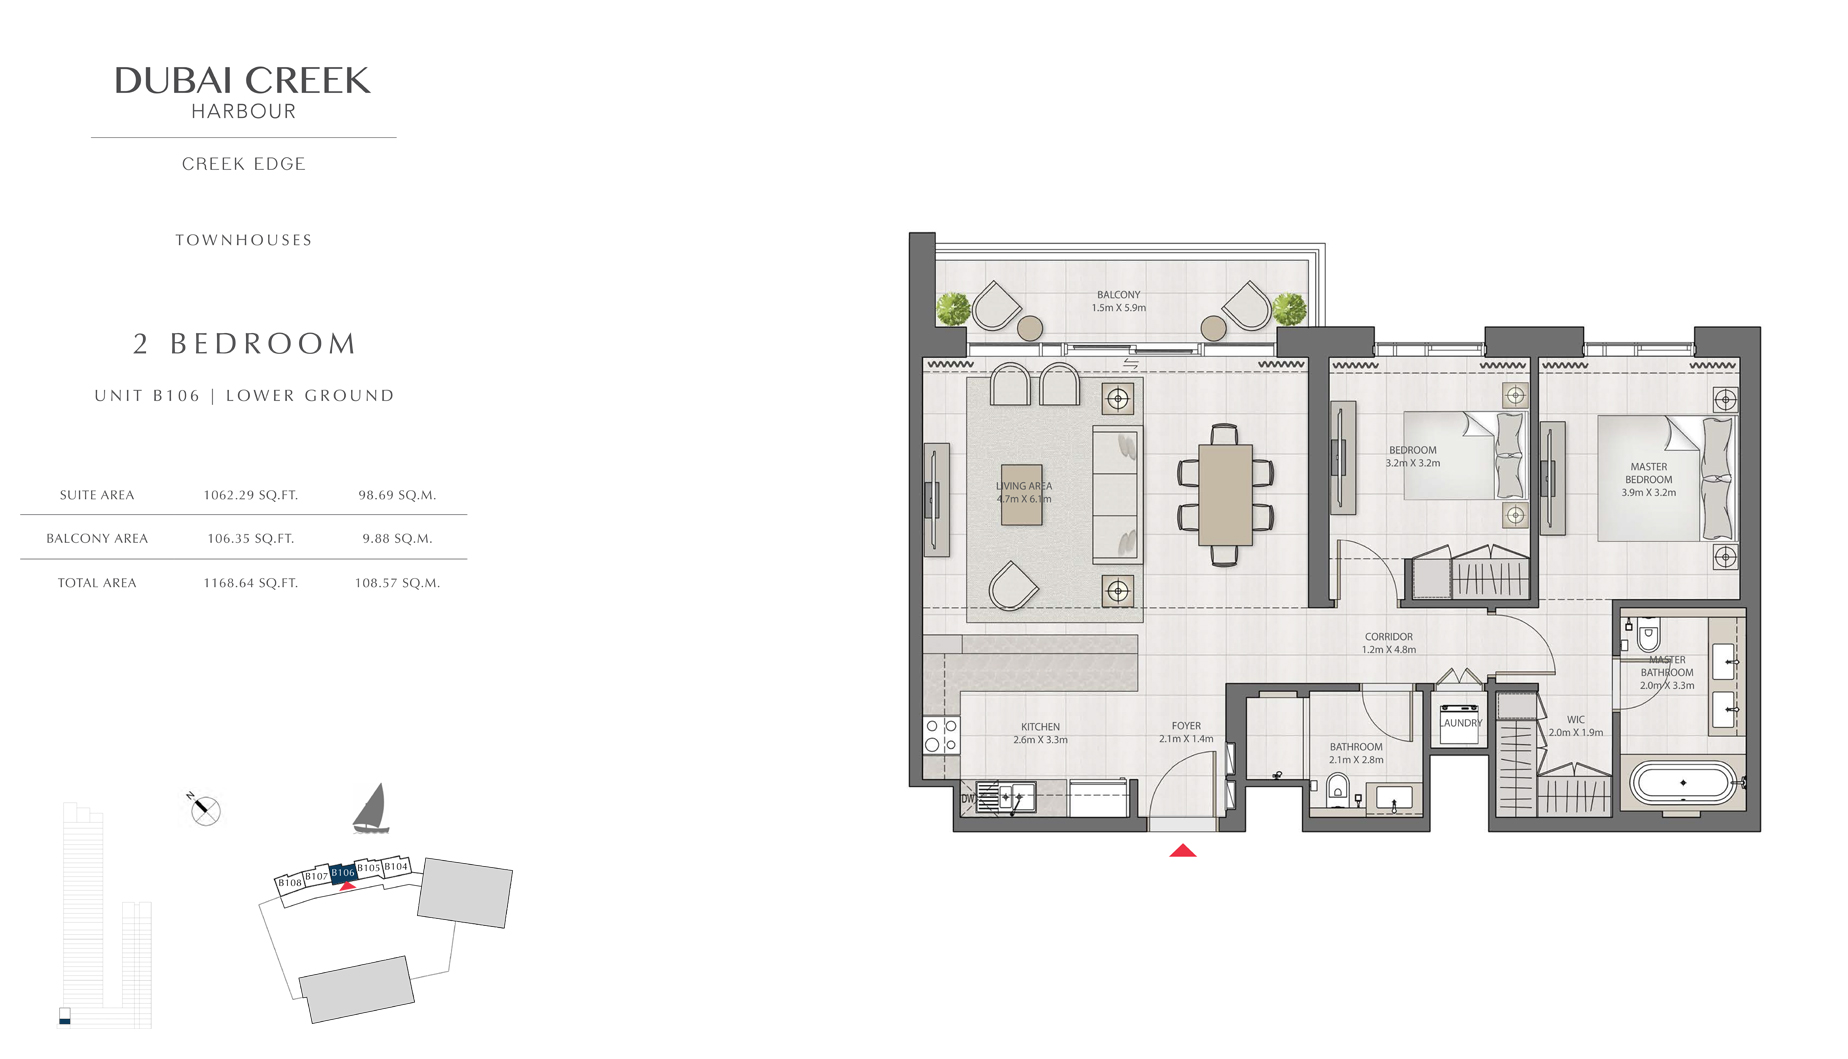 2 Bedroom Townhouses Unit B106 Level G Size 1168 sq.ft